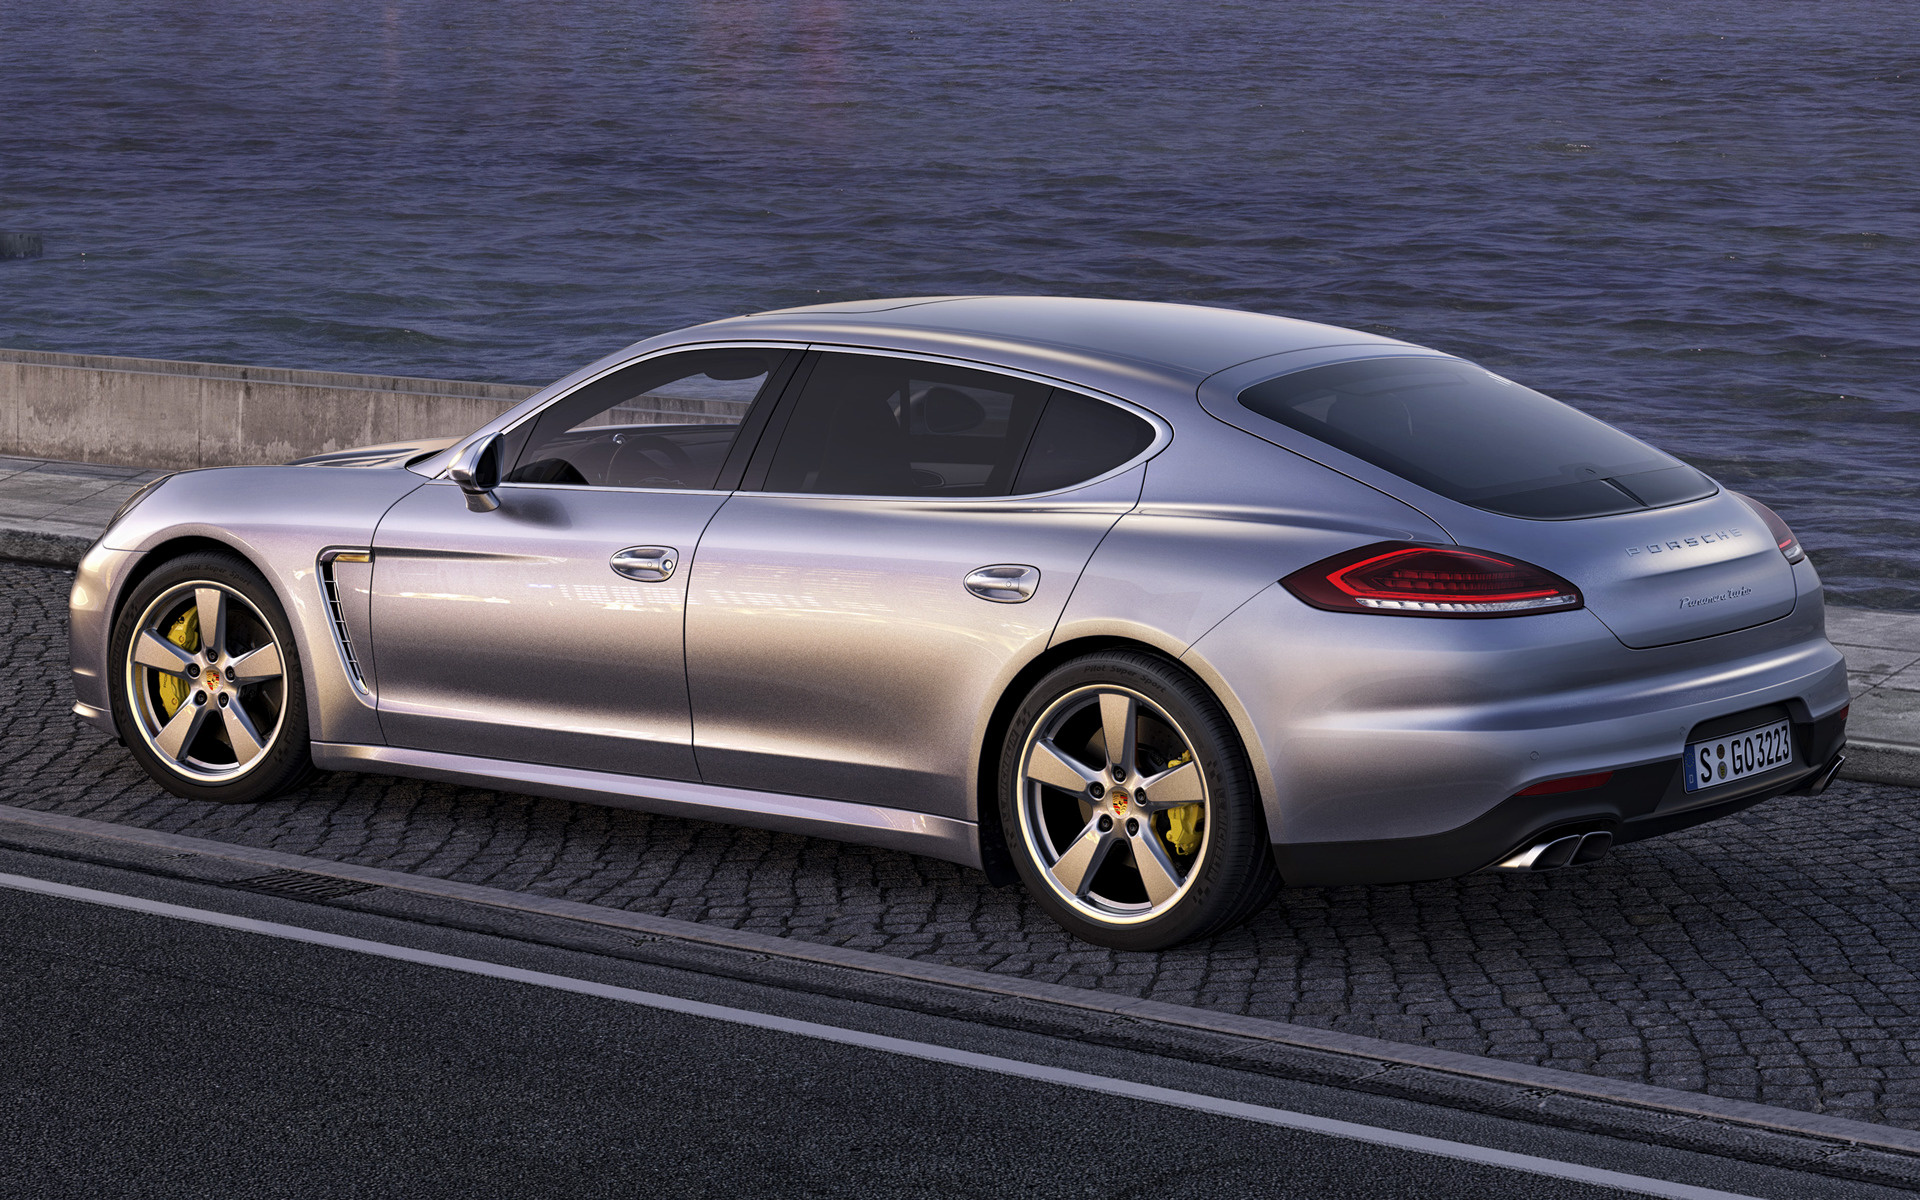 Porsche Panamera Turbo 2013 photo - 12